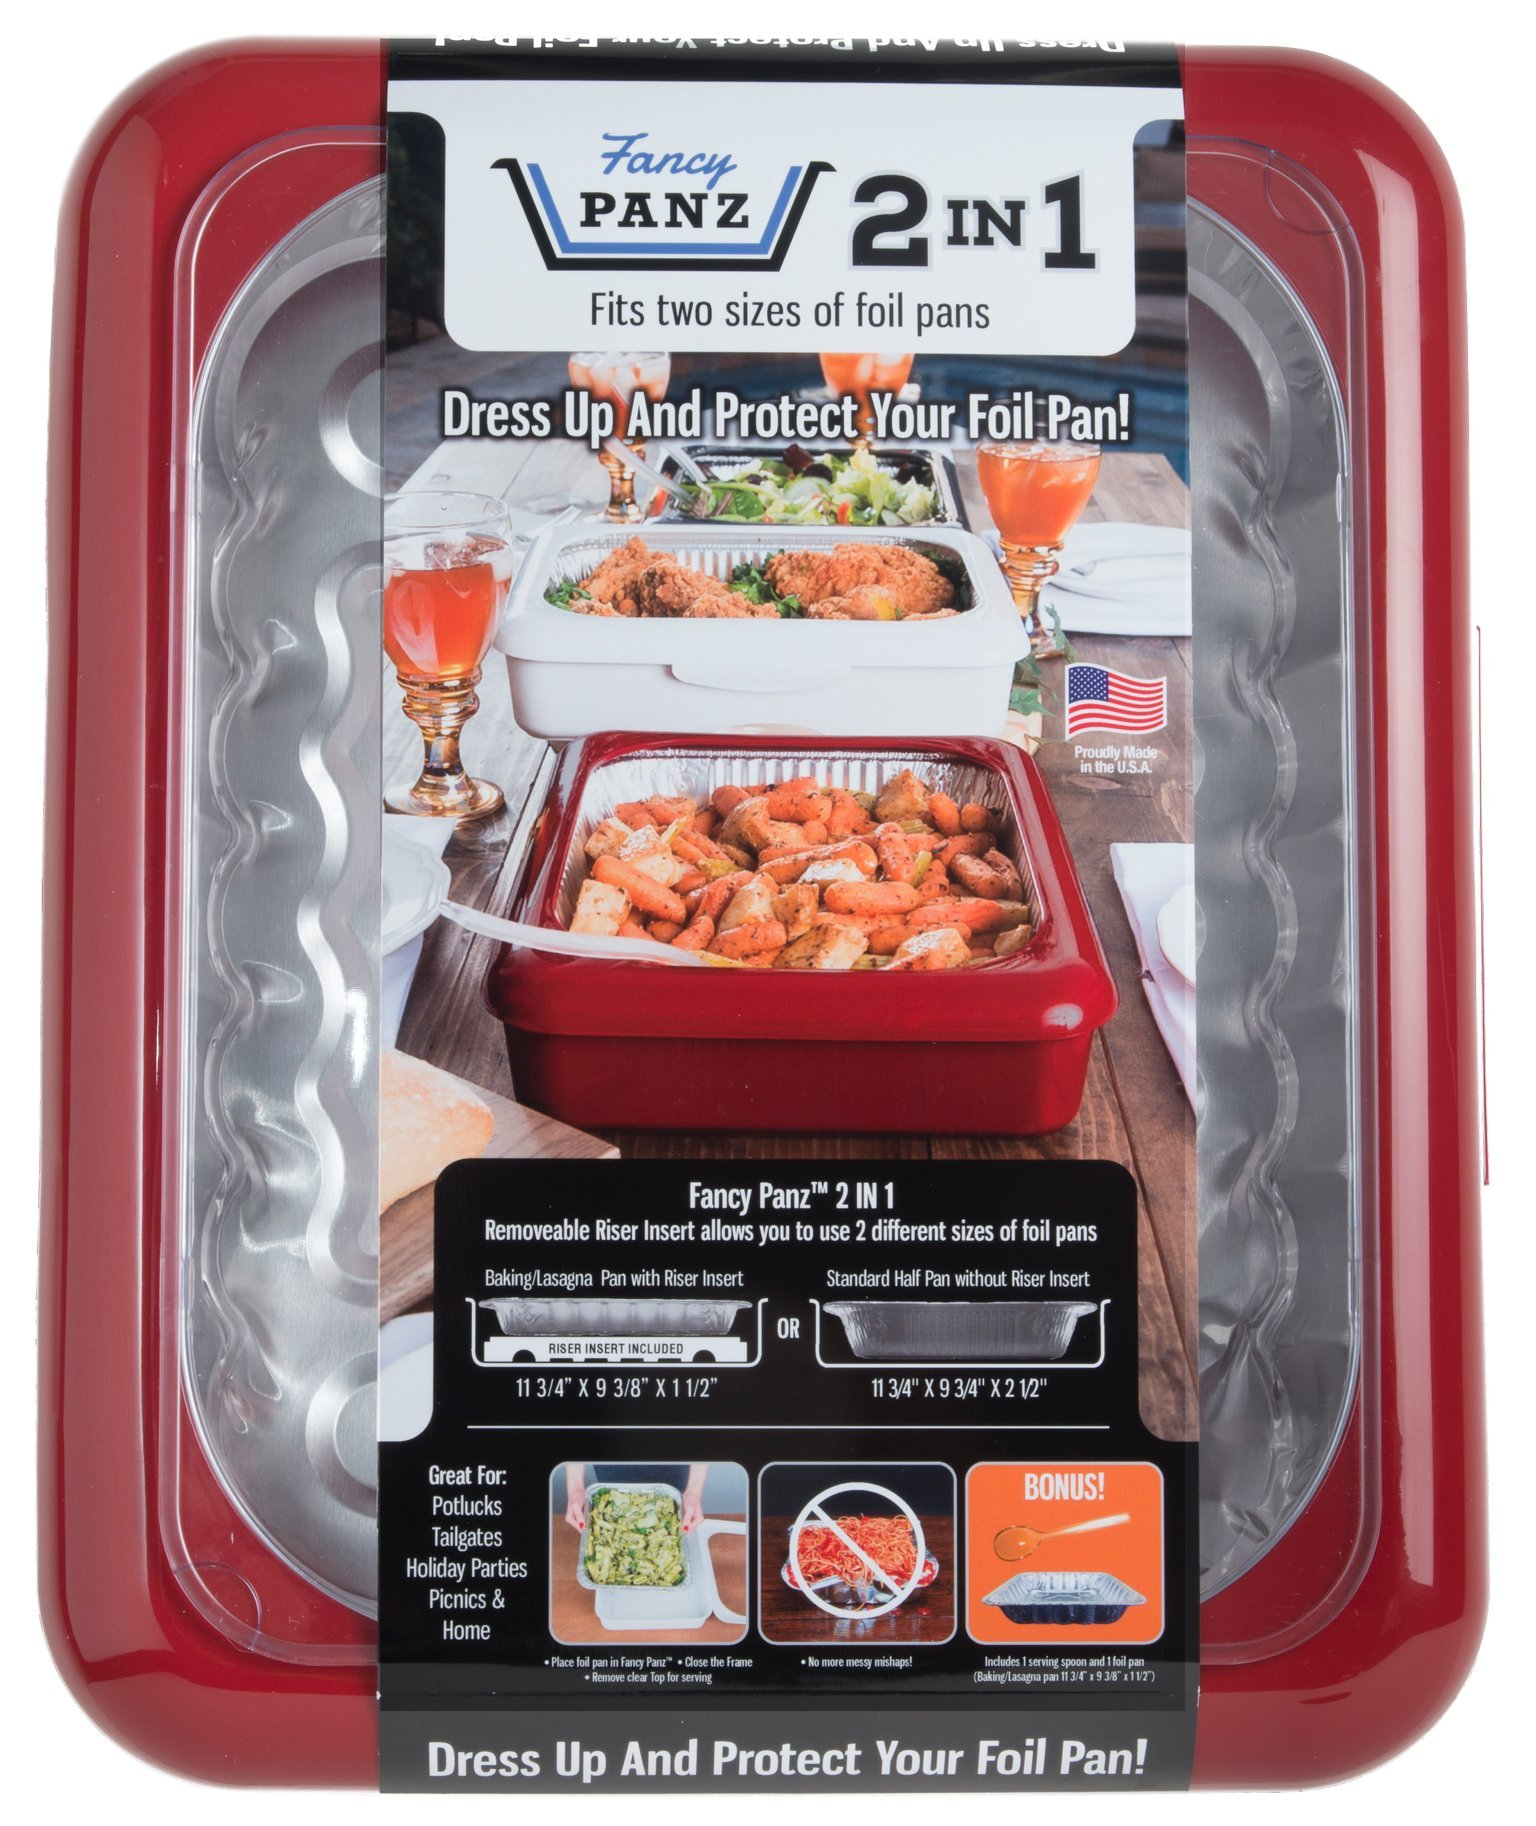 Fancy Panz FP21002 2 In 1 Portable Casserole Carrier for Indoor & Outdoor Use, Fits Shallow or Standard Half Size Foil Pans, Bonus Serving Spoon & Foil Pan Included, Red by Fancy Panz